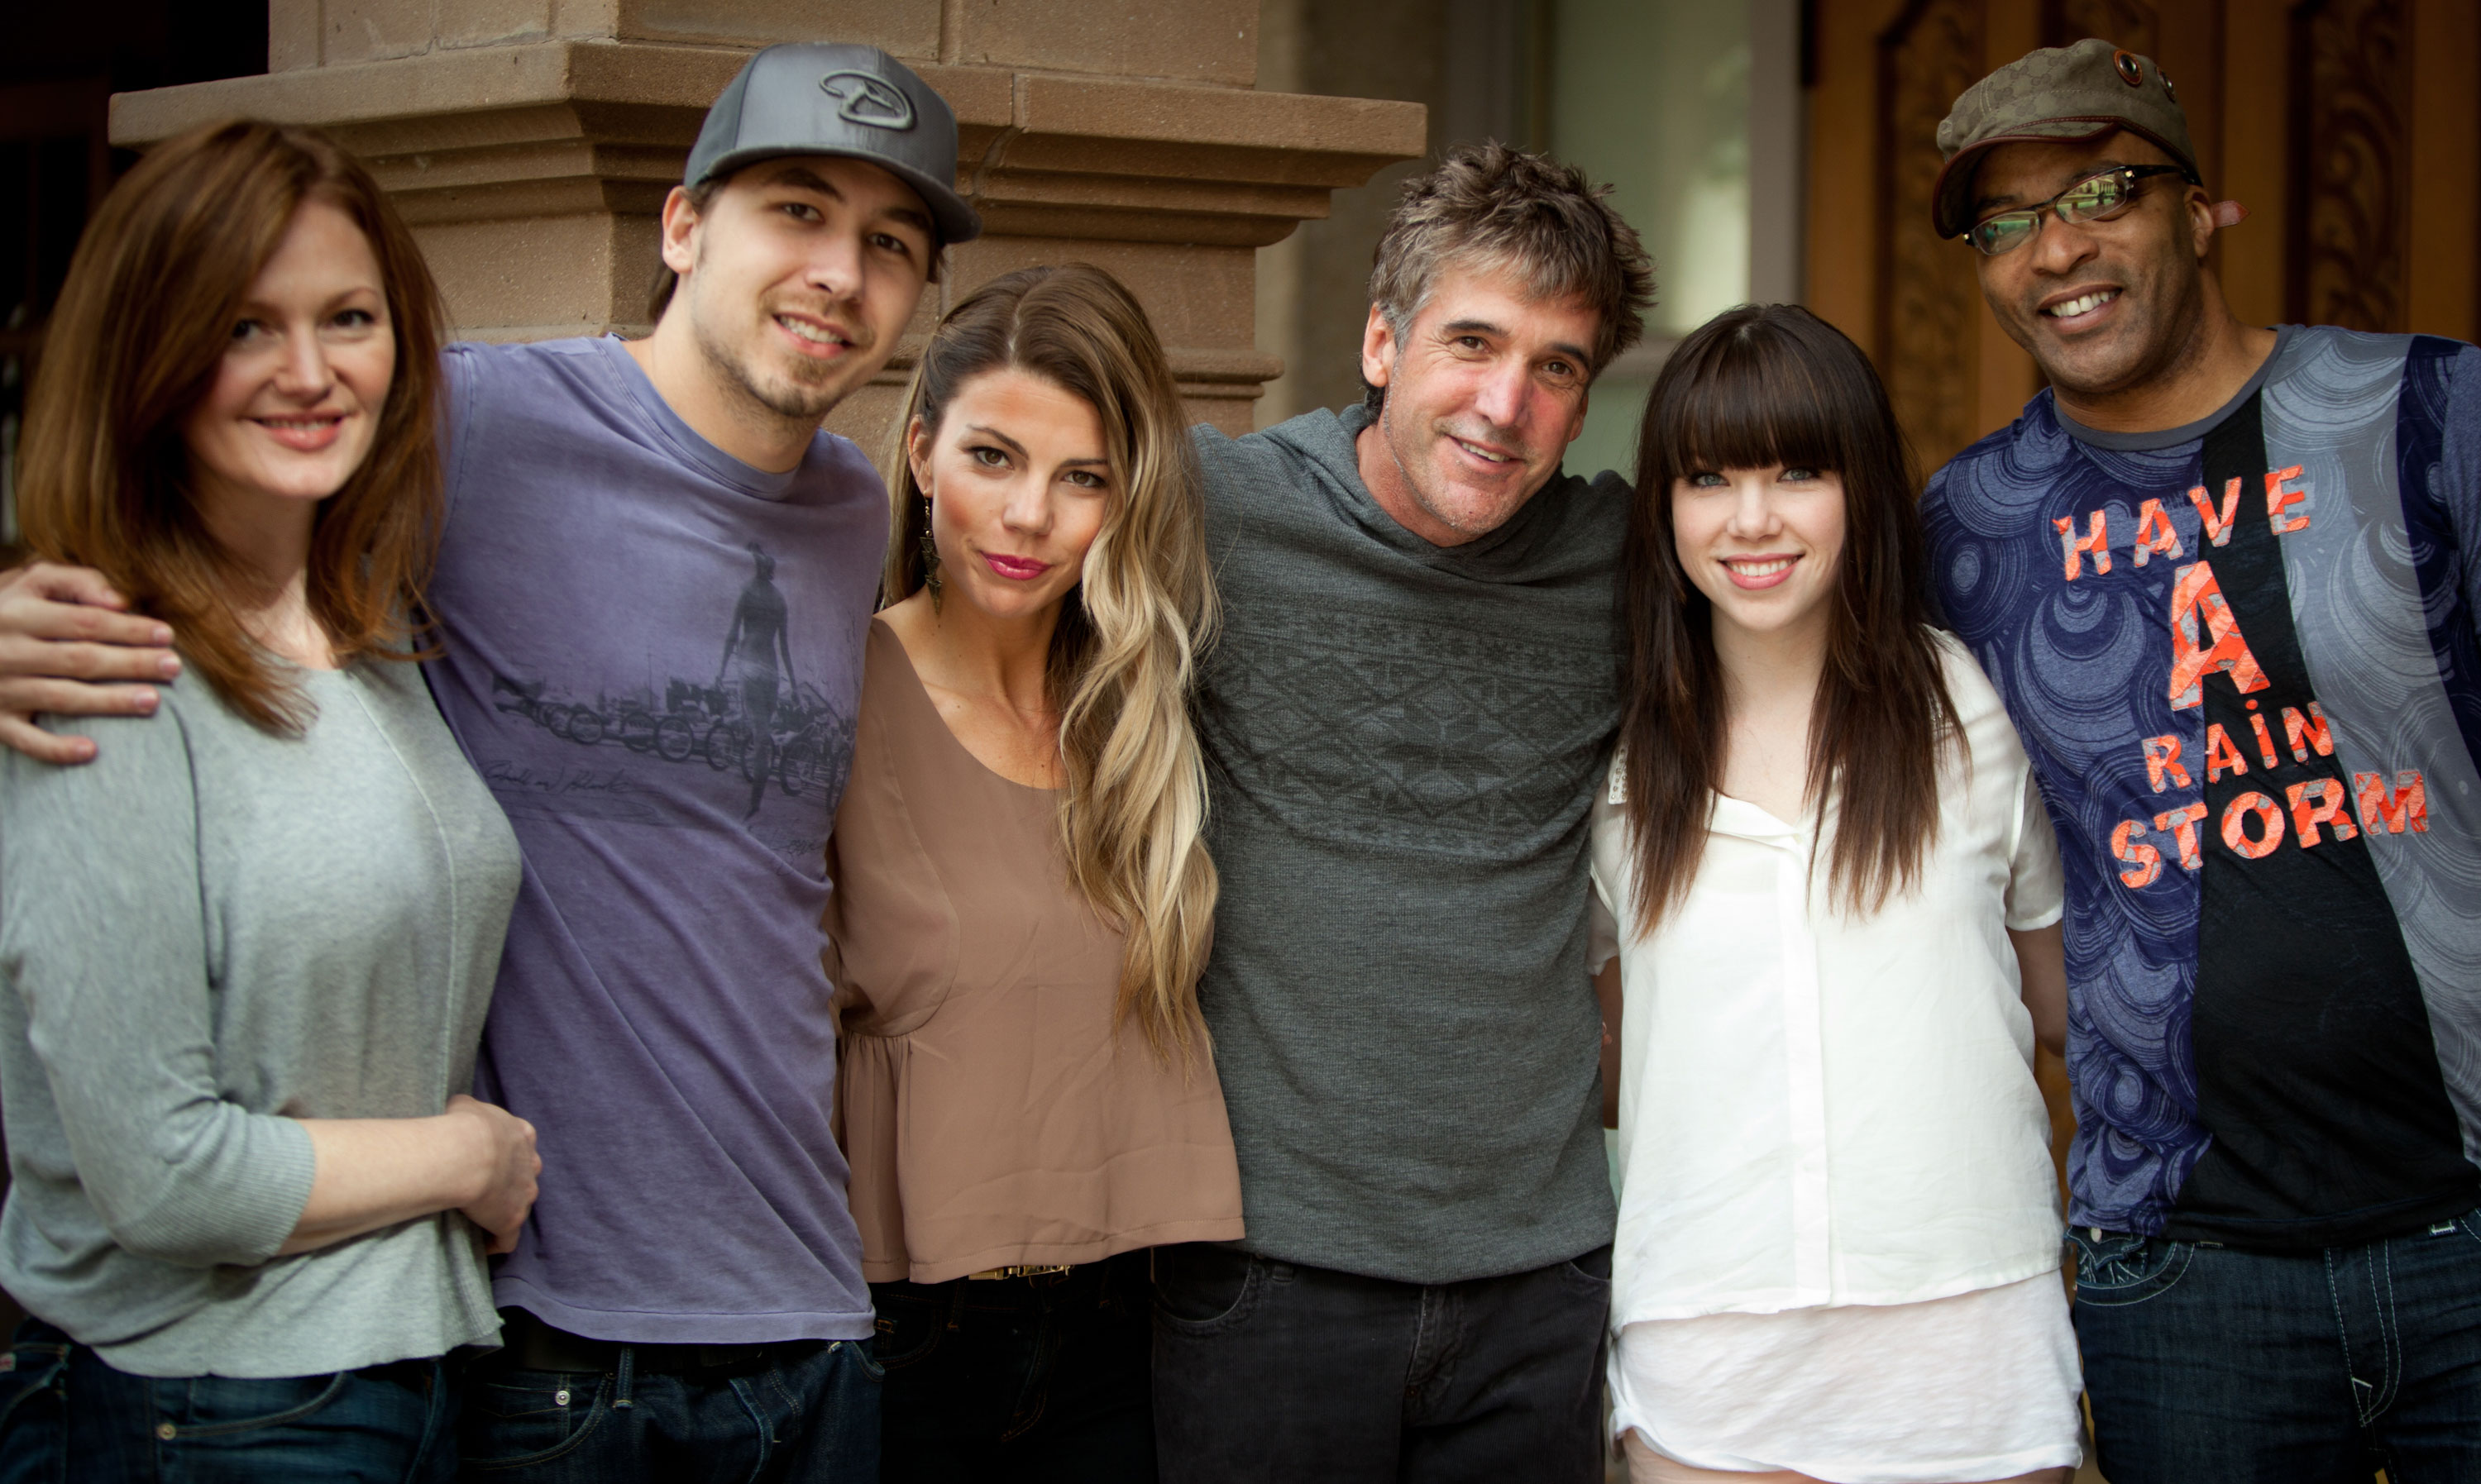 Kidd Kraddick's Big Secret - D Magazine